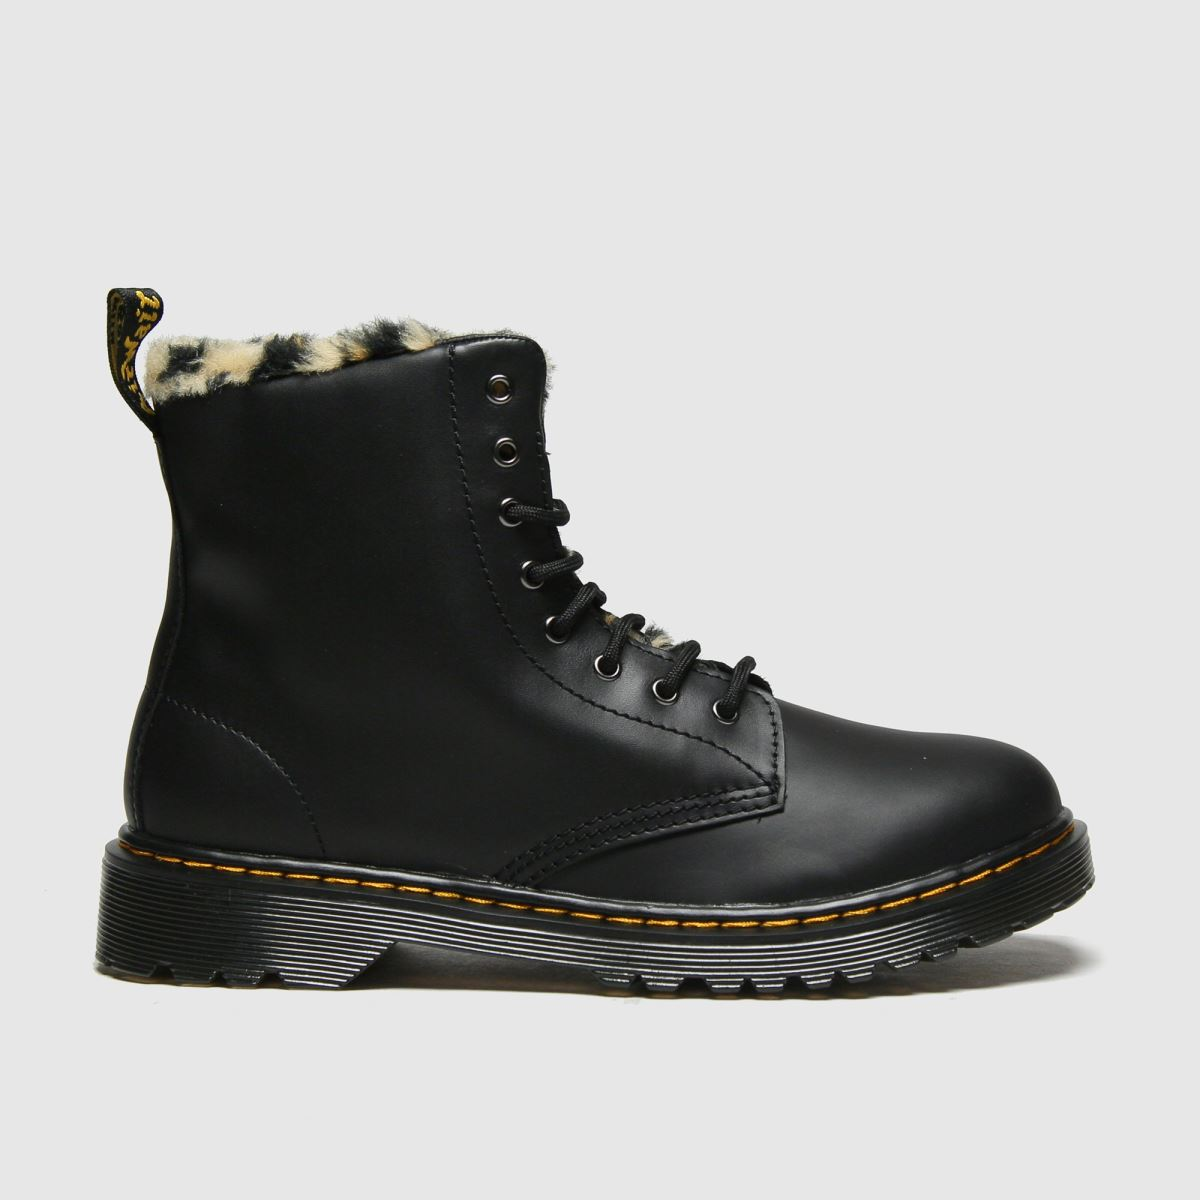 Dr Martens Black 1460 Serena Boots Youth